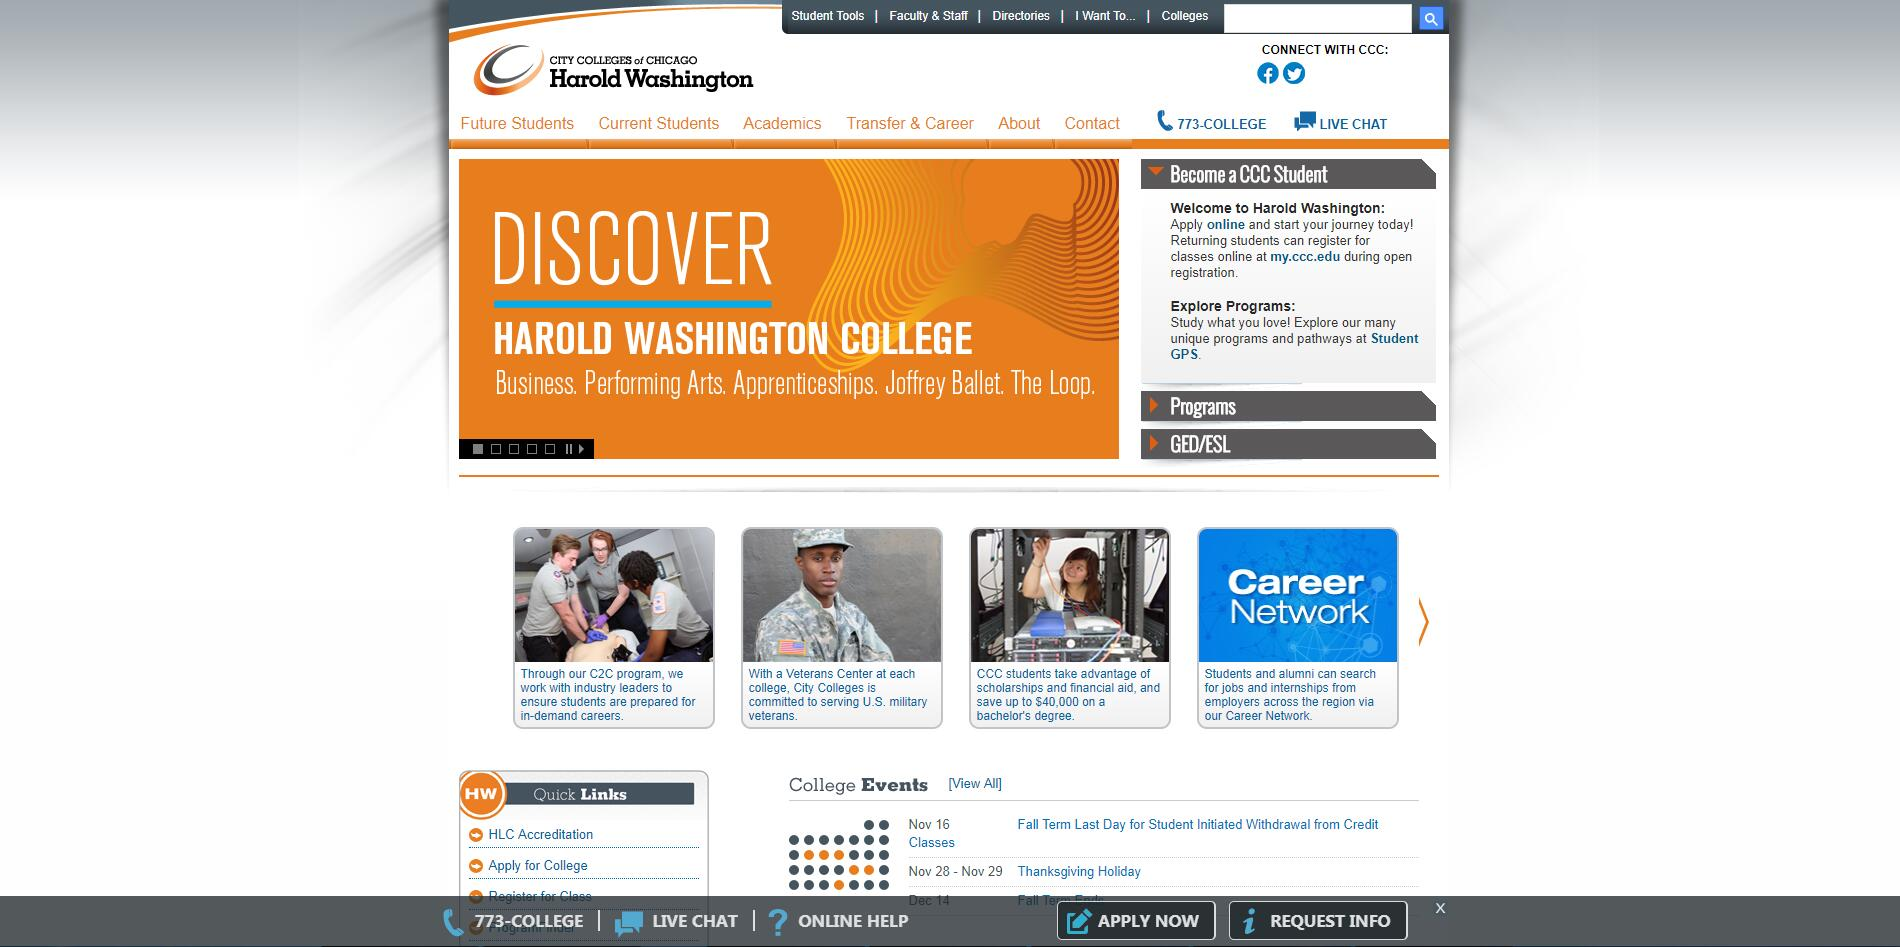 City Colleges of Chicago-Harold Washington College